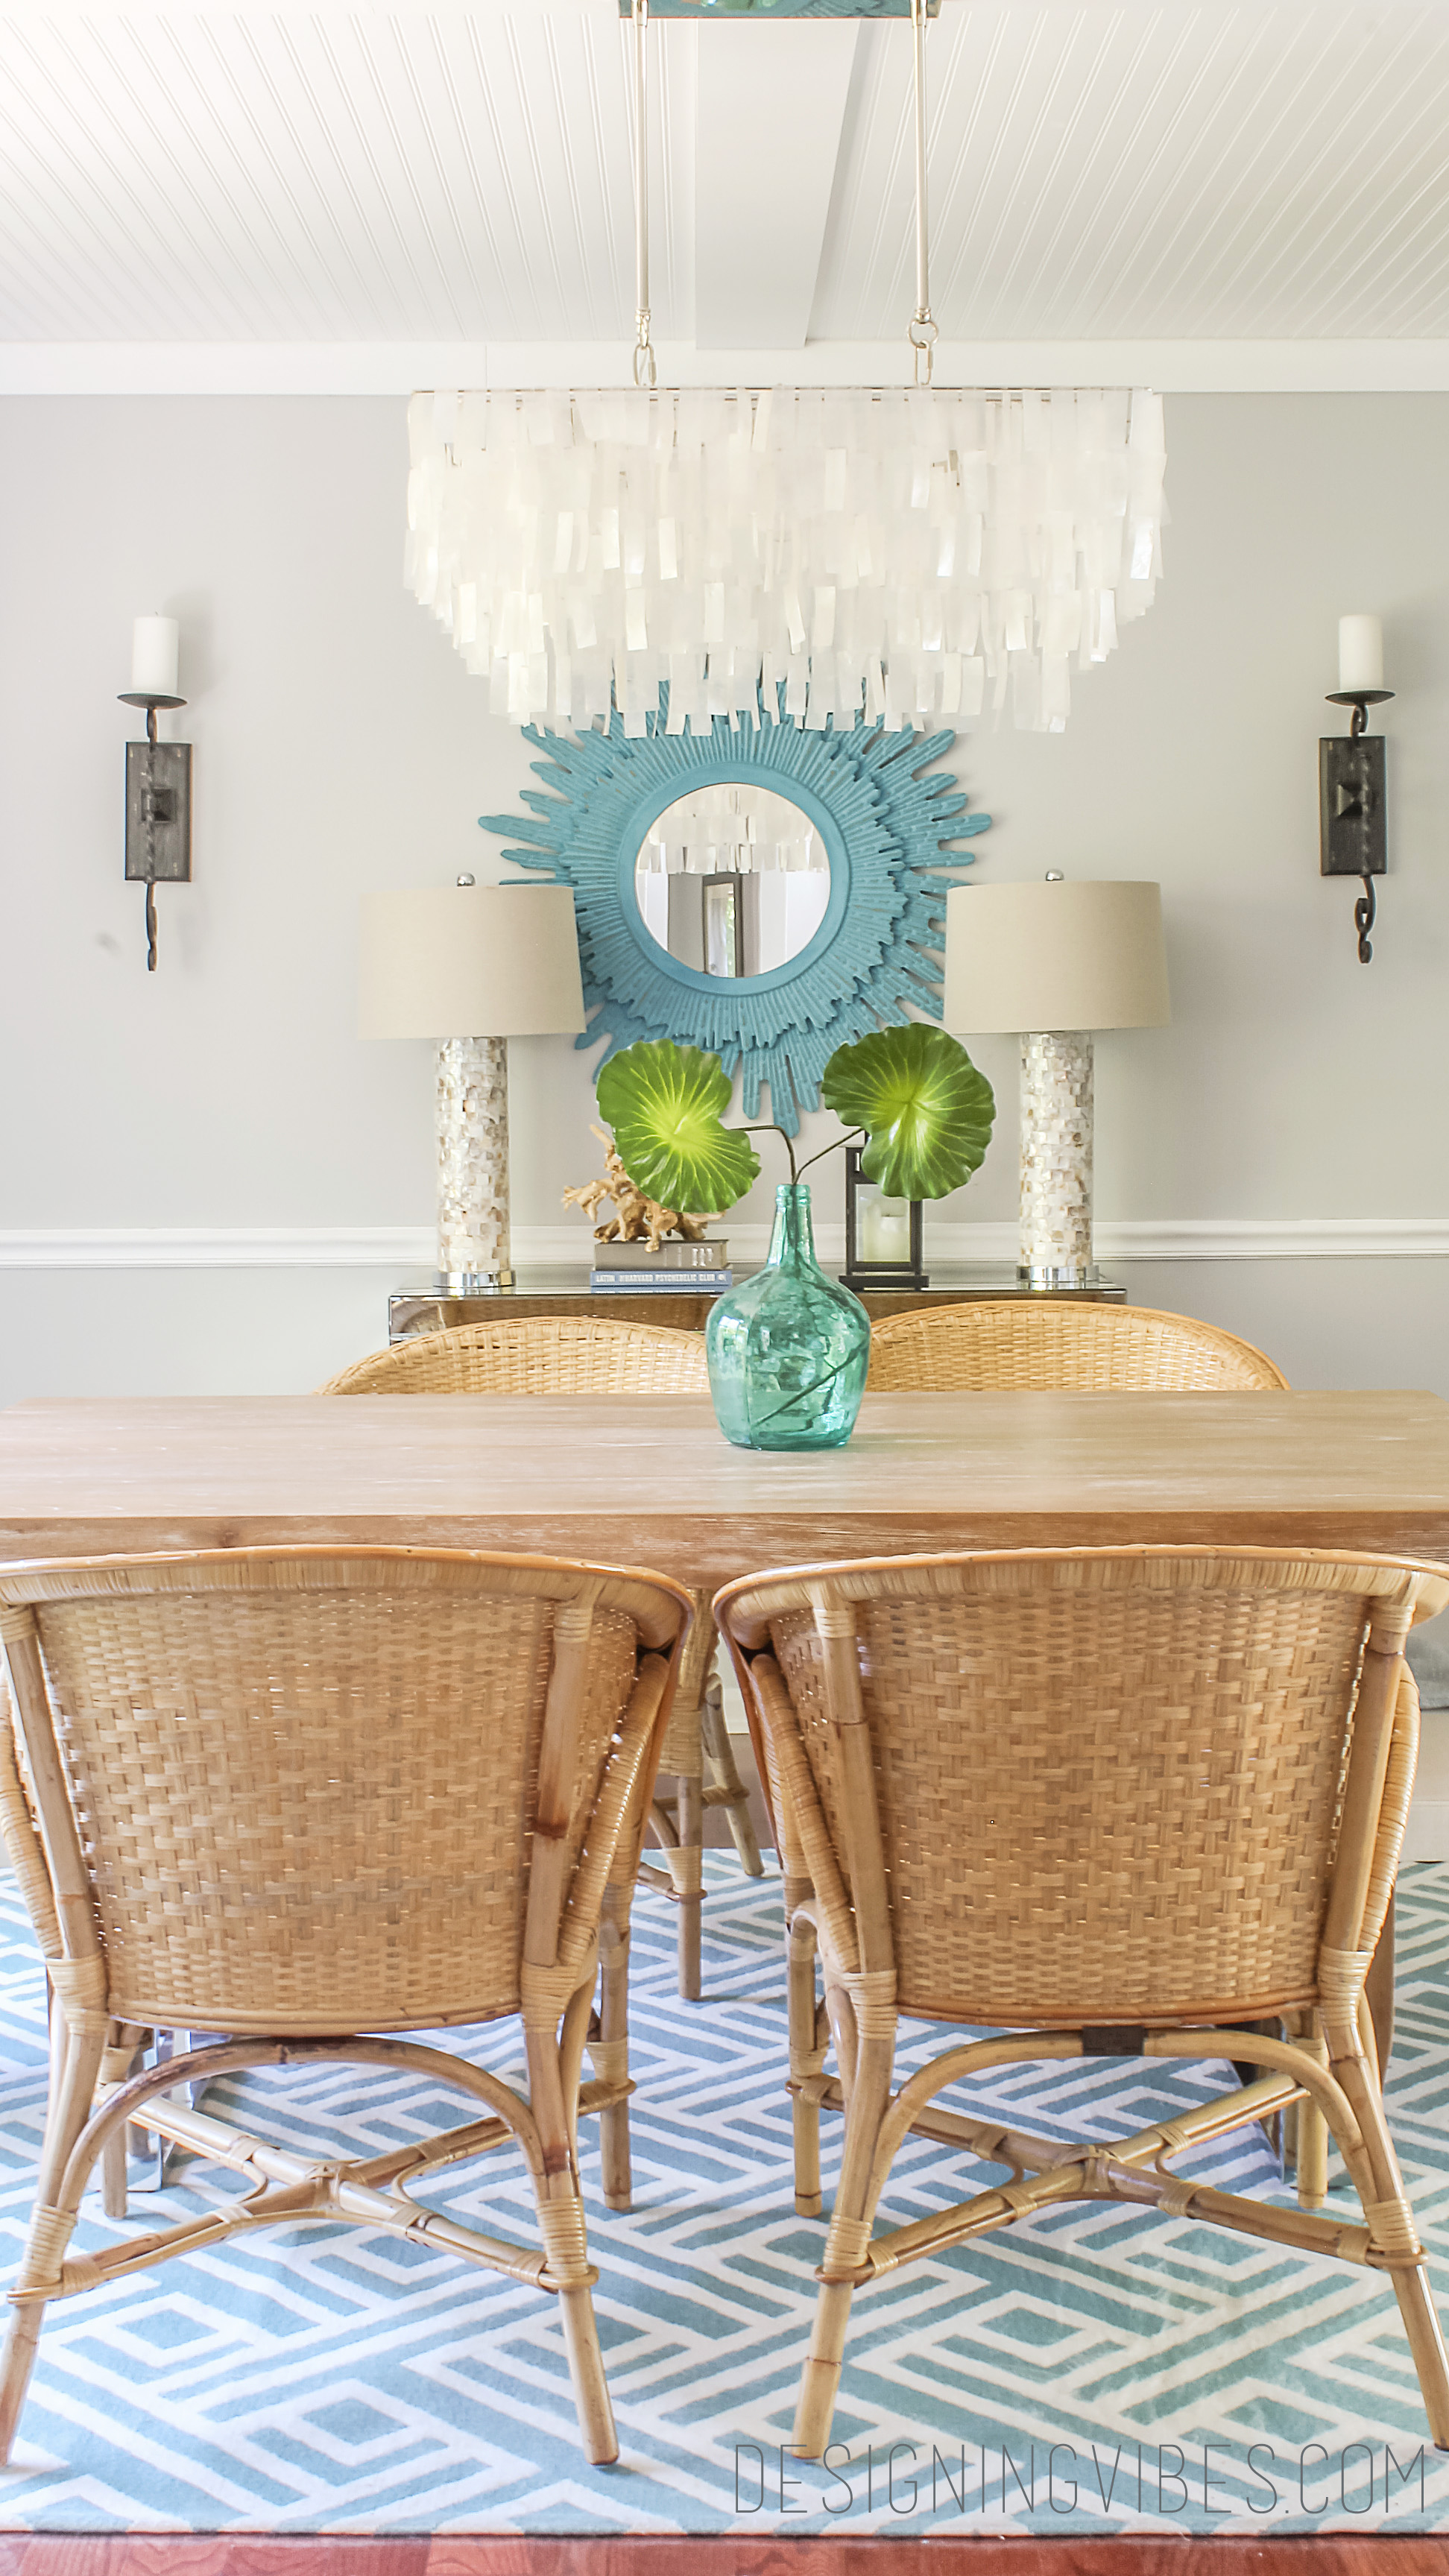 Modern Rattan Chairs Dining Room